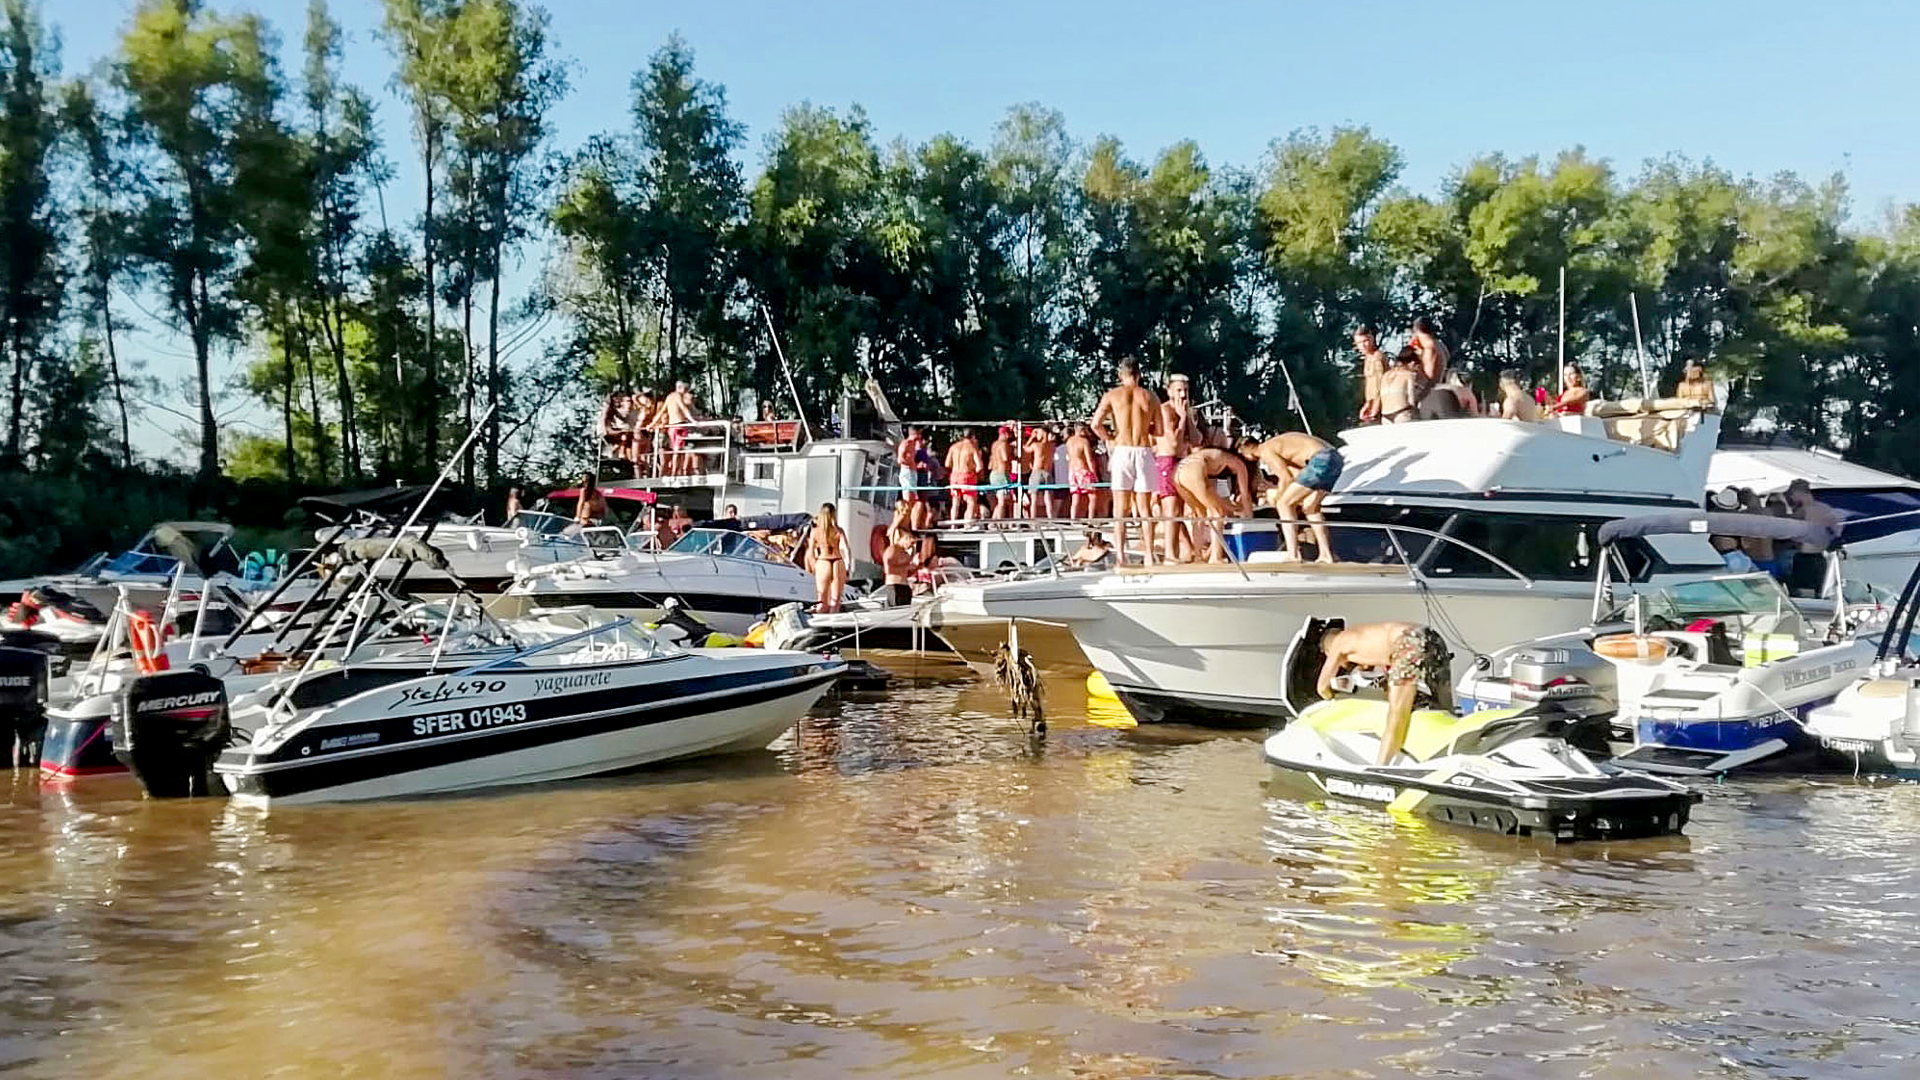 VIDEO: Yacht A Bunch Of Idiots: Anti-Covid-19 Cops Bust Boat Party